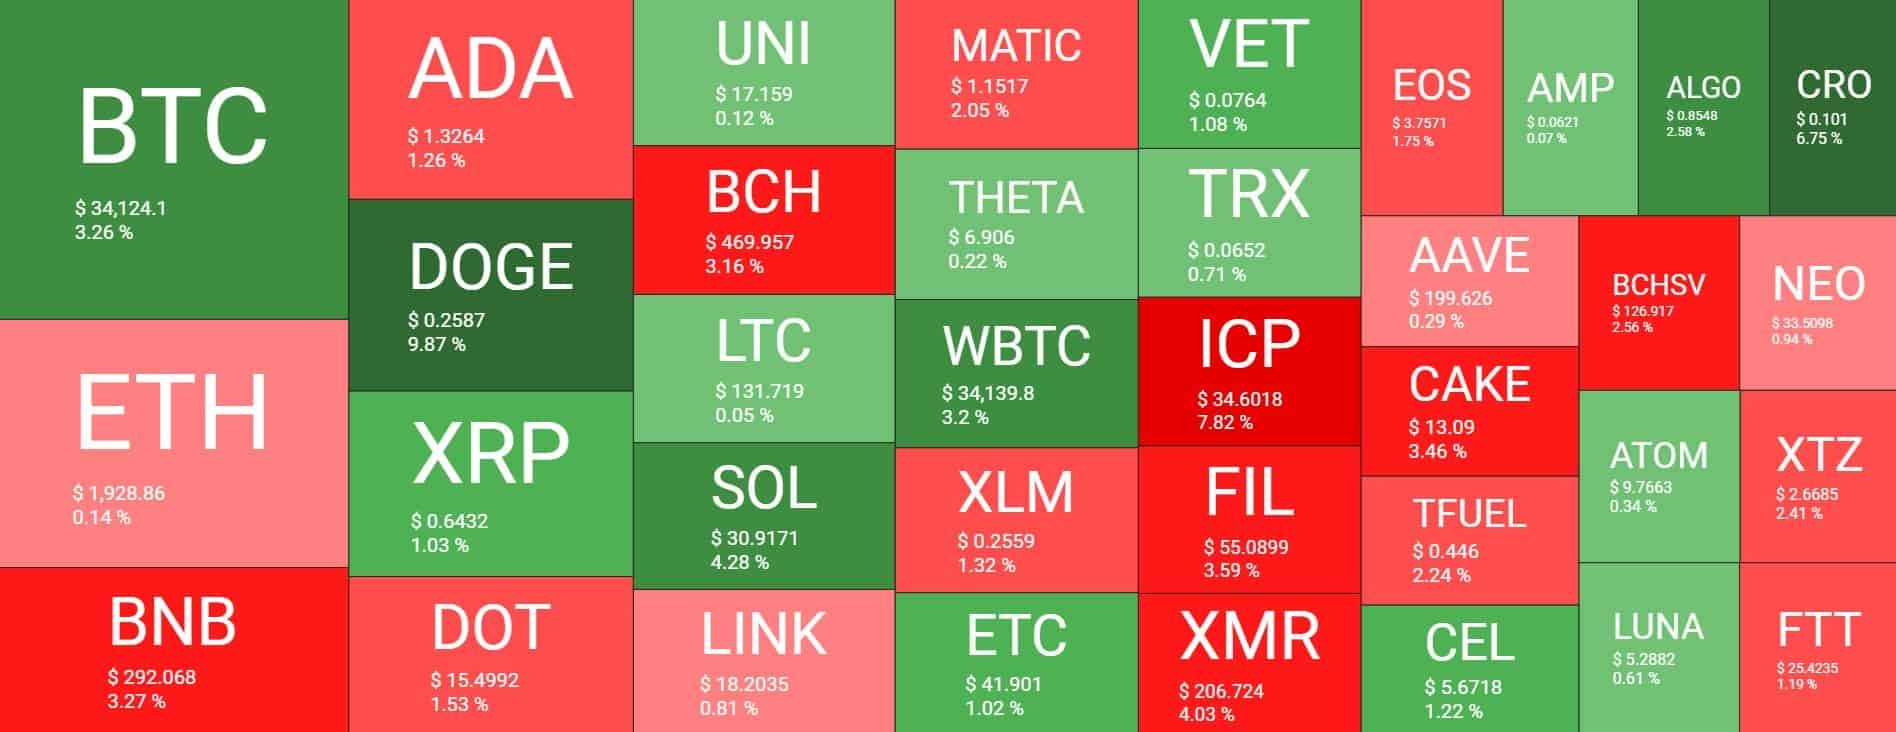 Overview of the cryptocurrency market. Source: Quantify Crypto